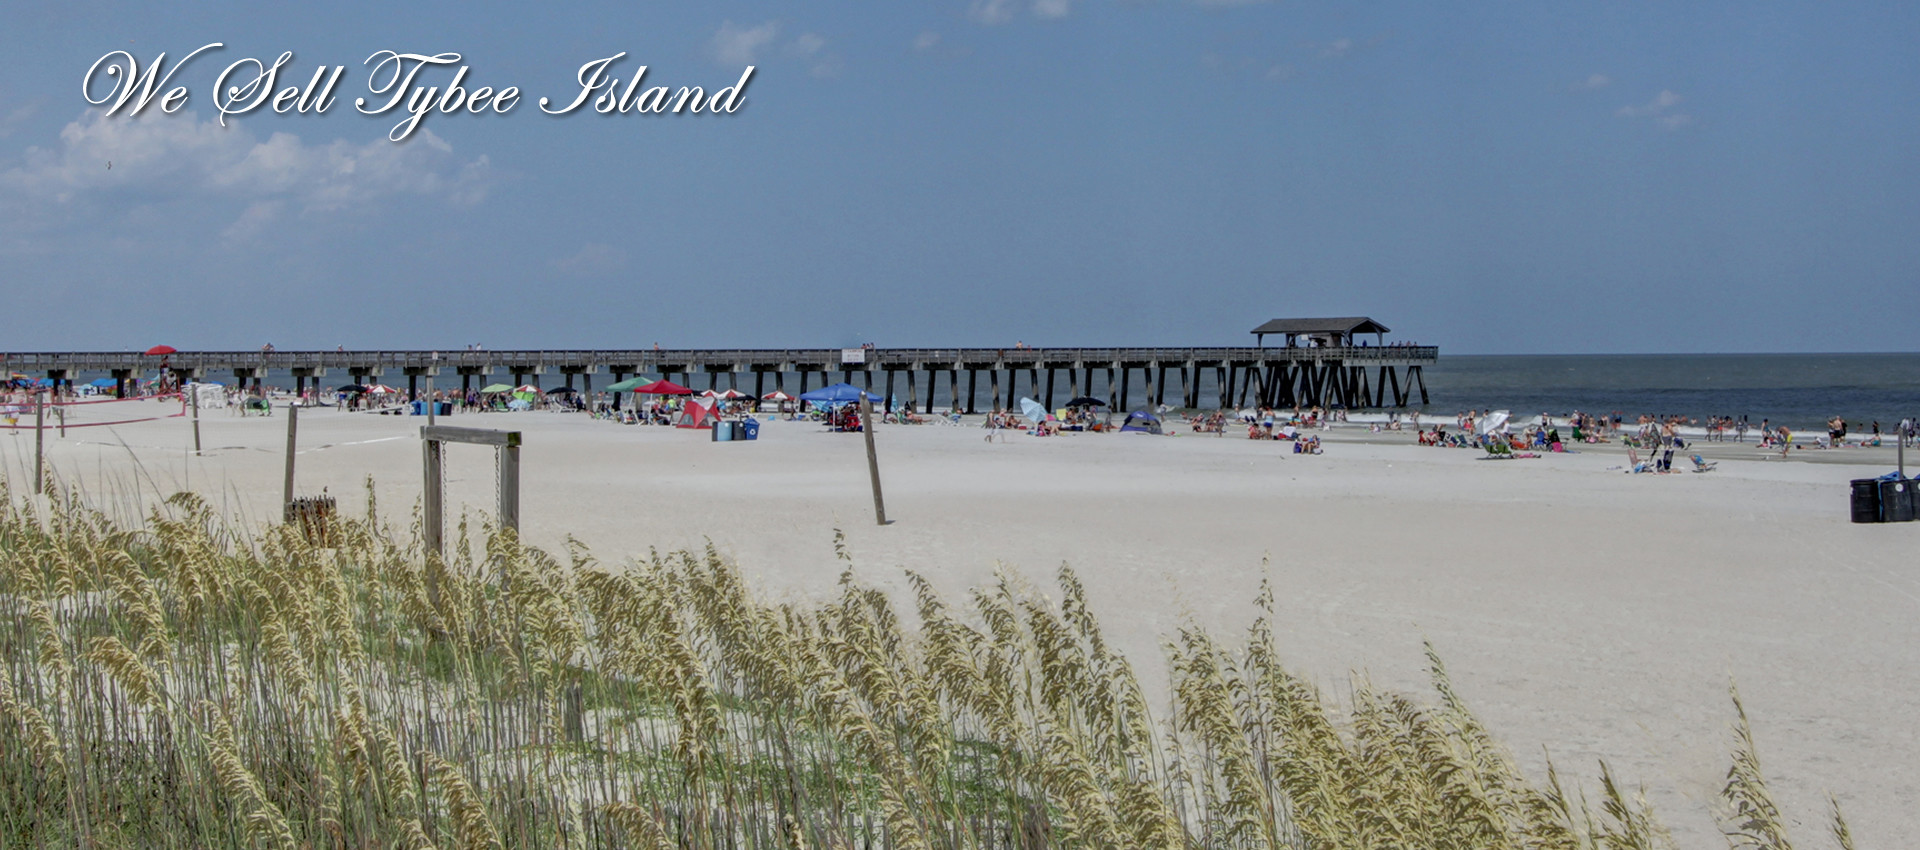 Tybee Island, GA Real Estate - Homes for Sale